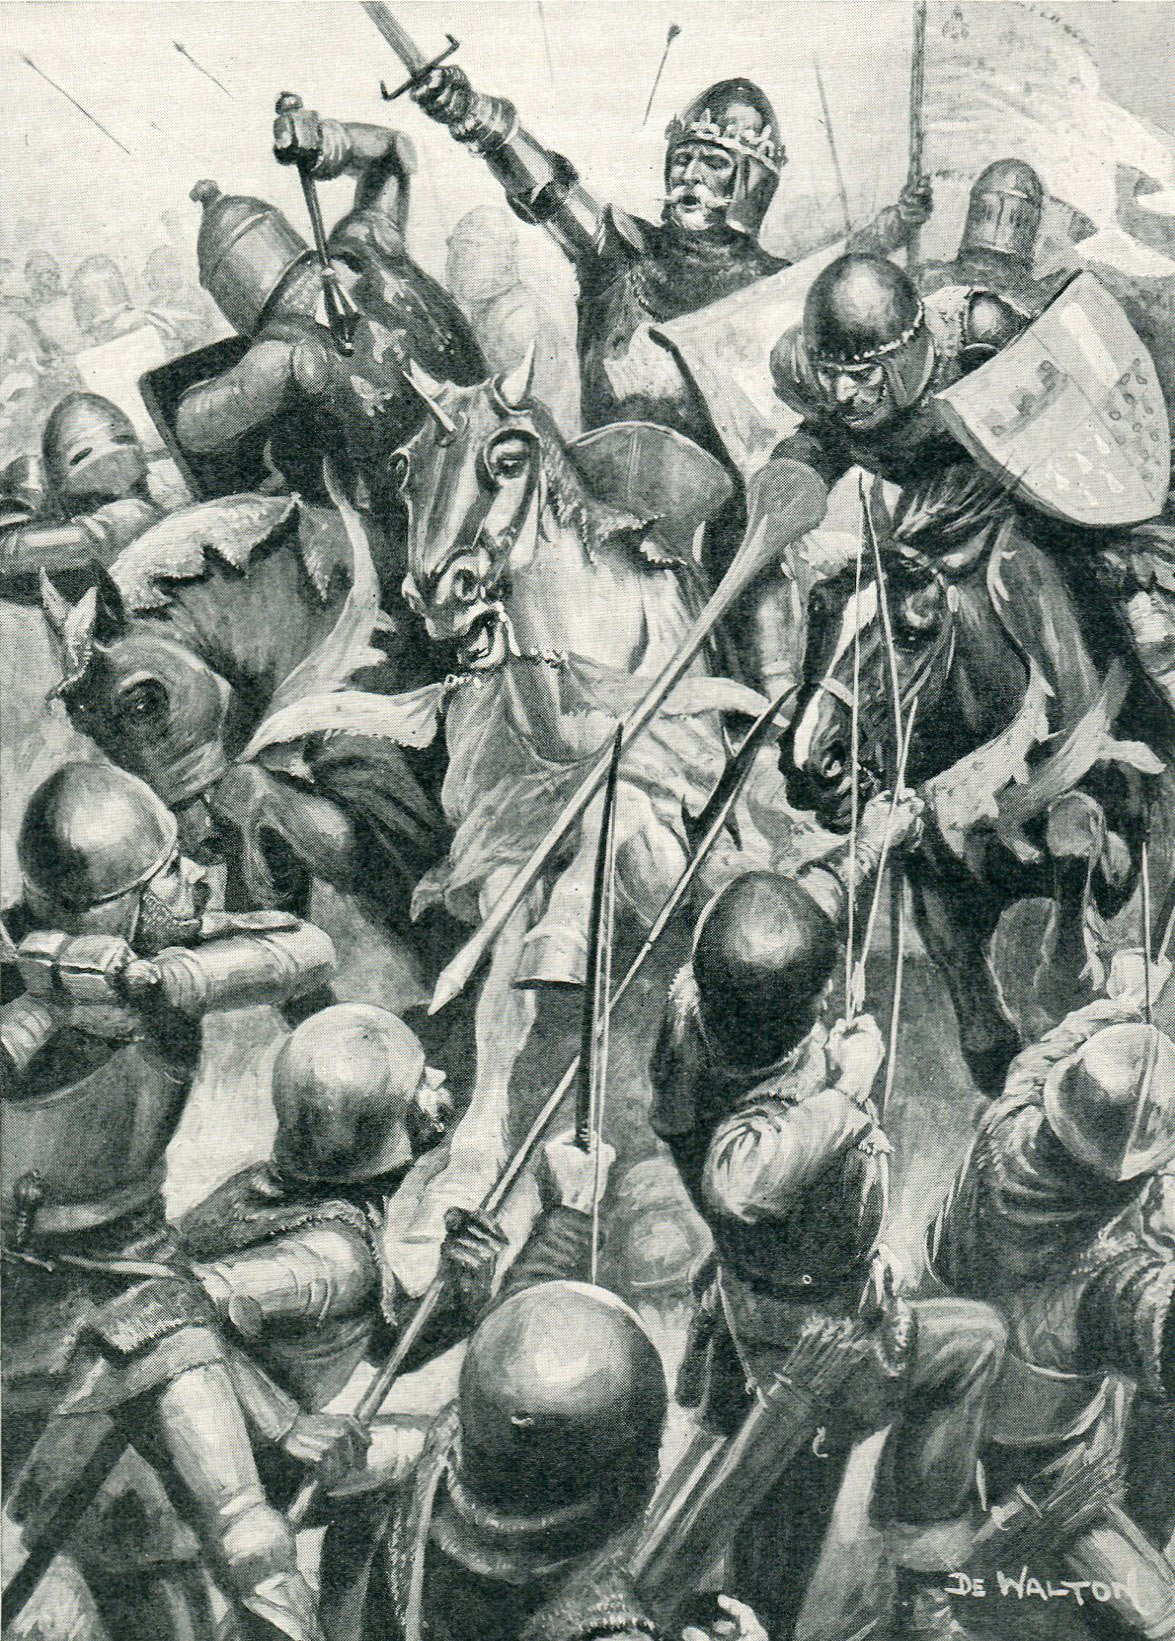 battle of cre ccedil y blind king john of bohemia at the battle of creccedily on 26th 1346 in the